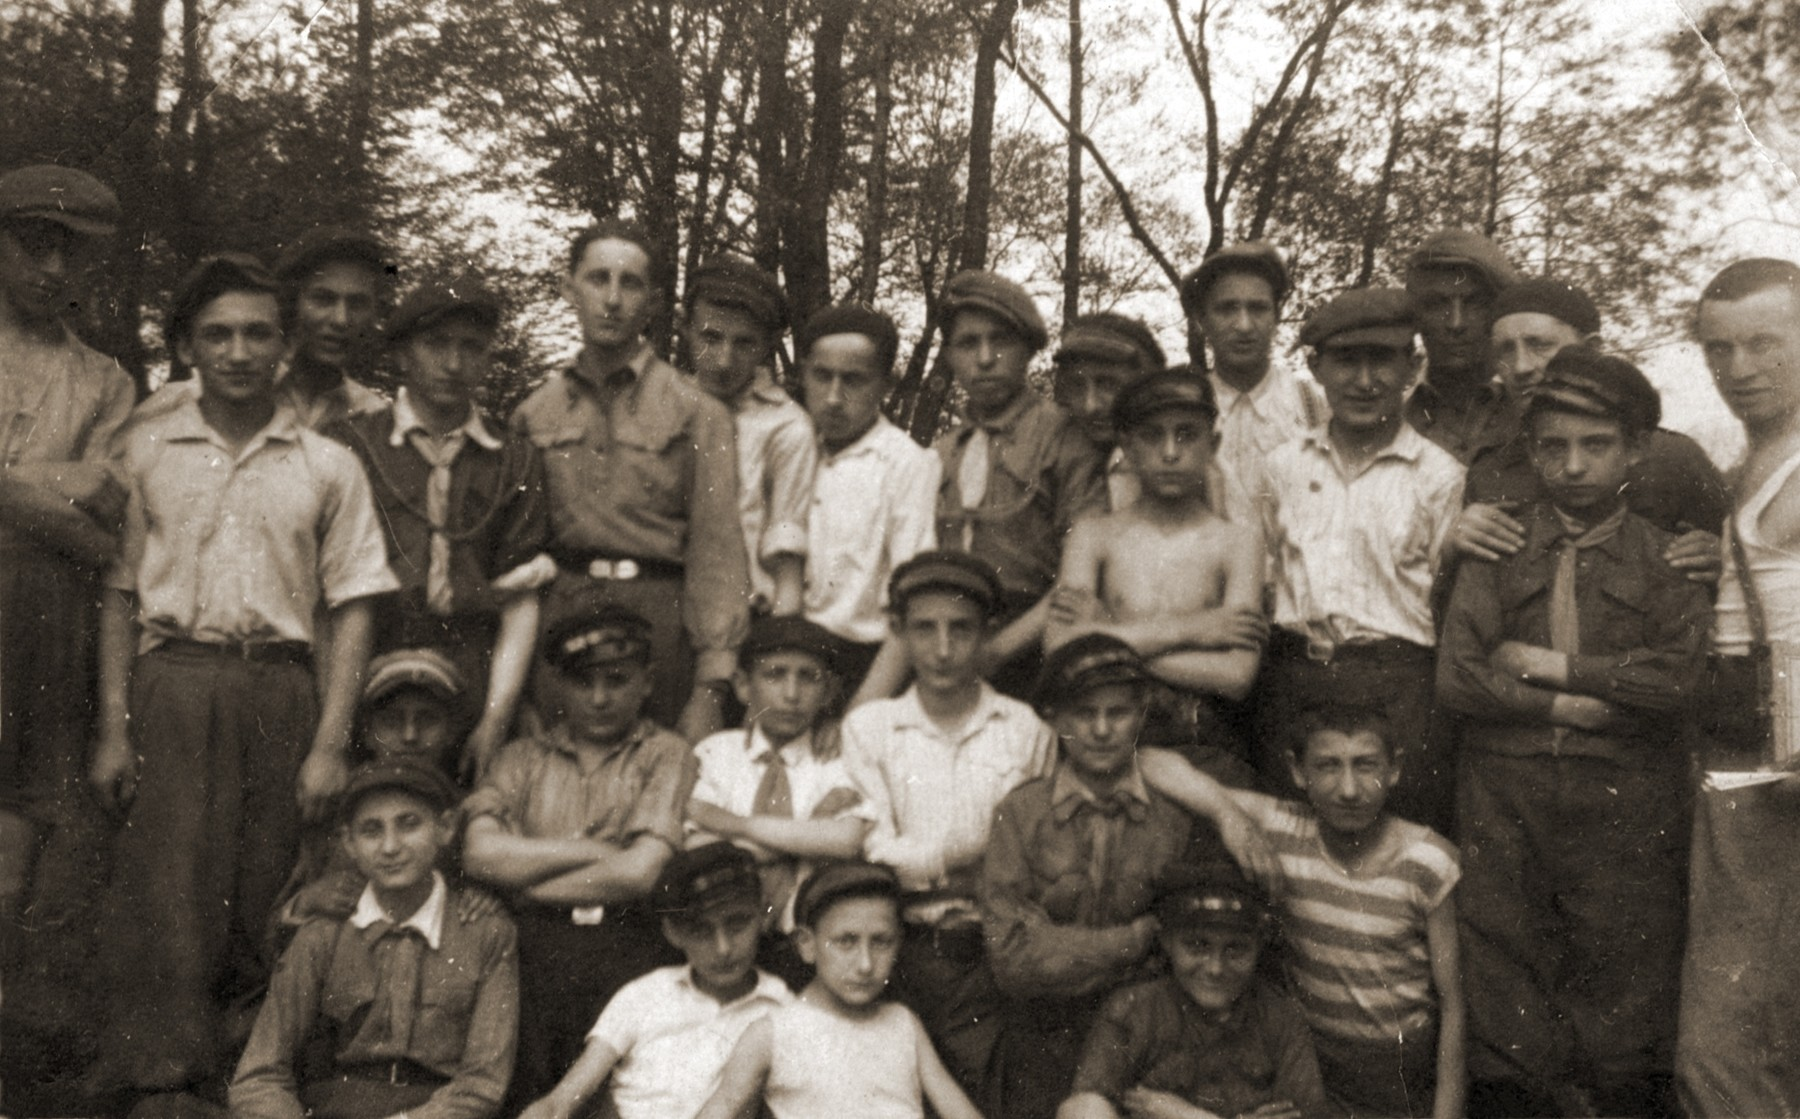 Group portrait of members of the Hashomer Hadati Zionist youth organization on an outing in the woods.  Pictured (top row, from left to right): unknown; Blumenfeld; unknown; Szmuel (Samuel) Gottlieb; Motek Rechnic; Motek Zajac; unknown; Hesiek Rechnic; Motek Ostrowiecki; Ilek Stawski;  Majer Nowomiejski; Szolem Blumenfeld; Mojszele Gruszka; Nordon, and Menachem Bukowski; (second row, left to right) are: Chune Kenner; Icek Rendel; Josek Lenczner; Rueven Lefkowicz; Motek Rendel, and Moniek Rozen (the donor, in striped shirt, aged 13 years);  (front row, from left to right) are: Hercko Lenczner; Jakub Bajtner; Moniek Szeps, and Motek Kenner.